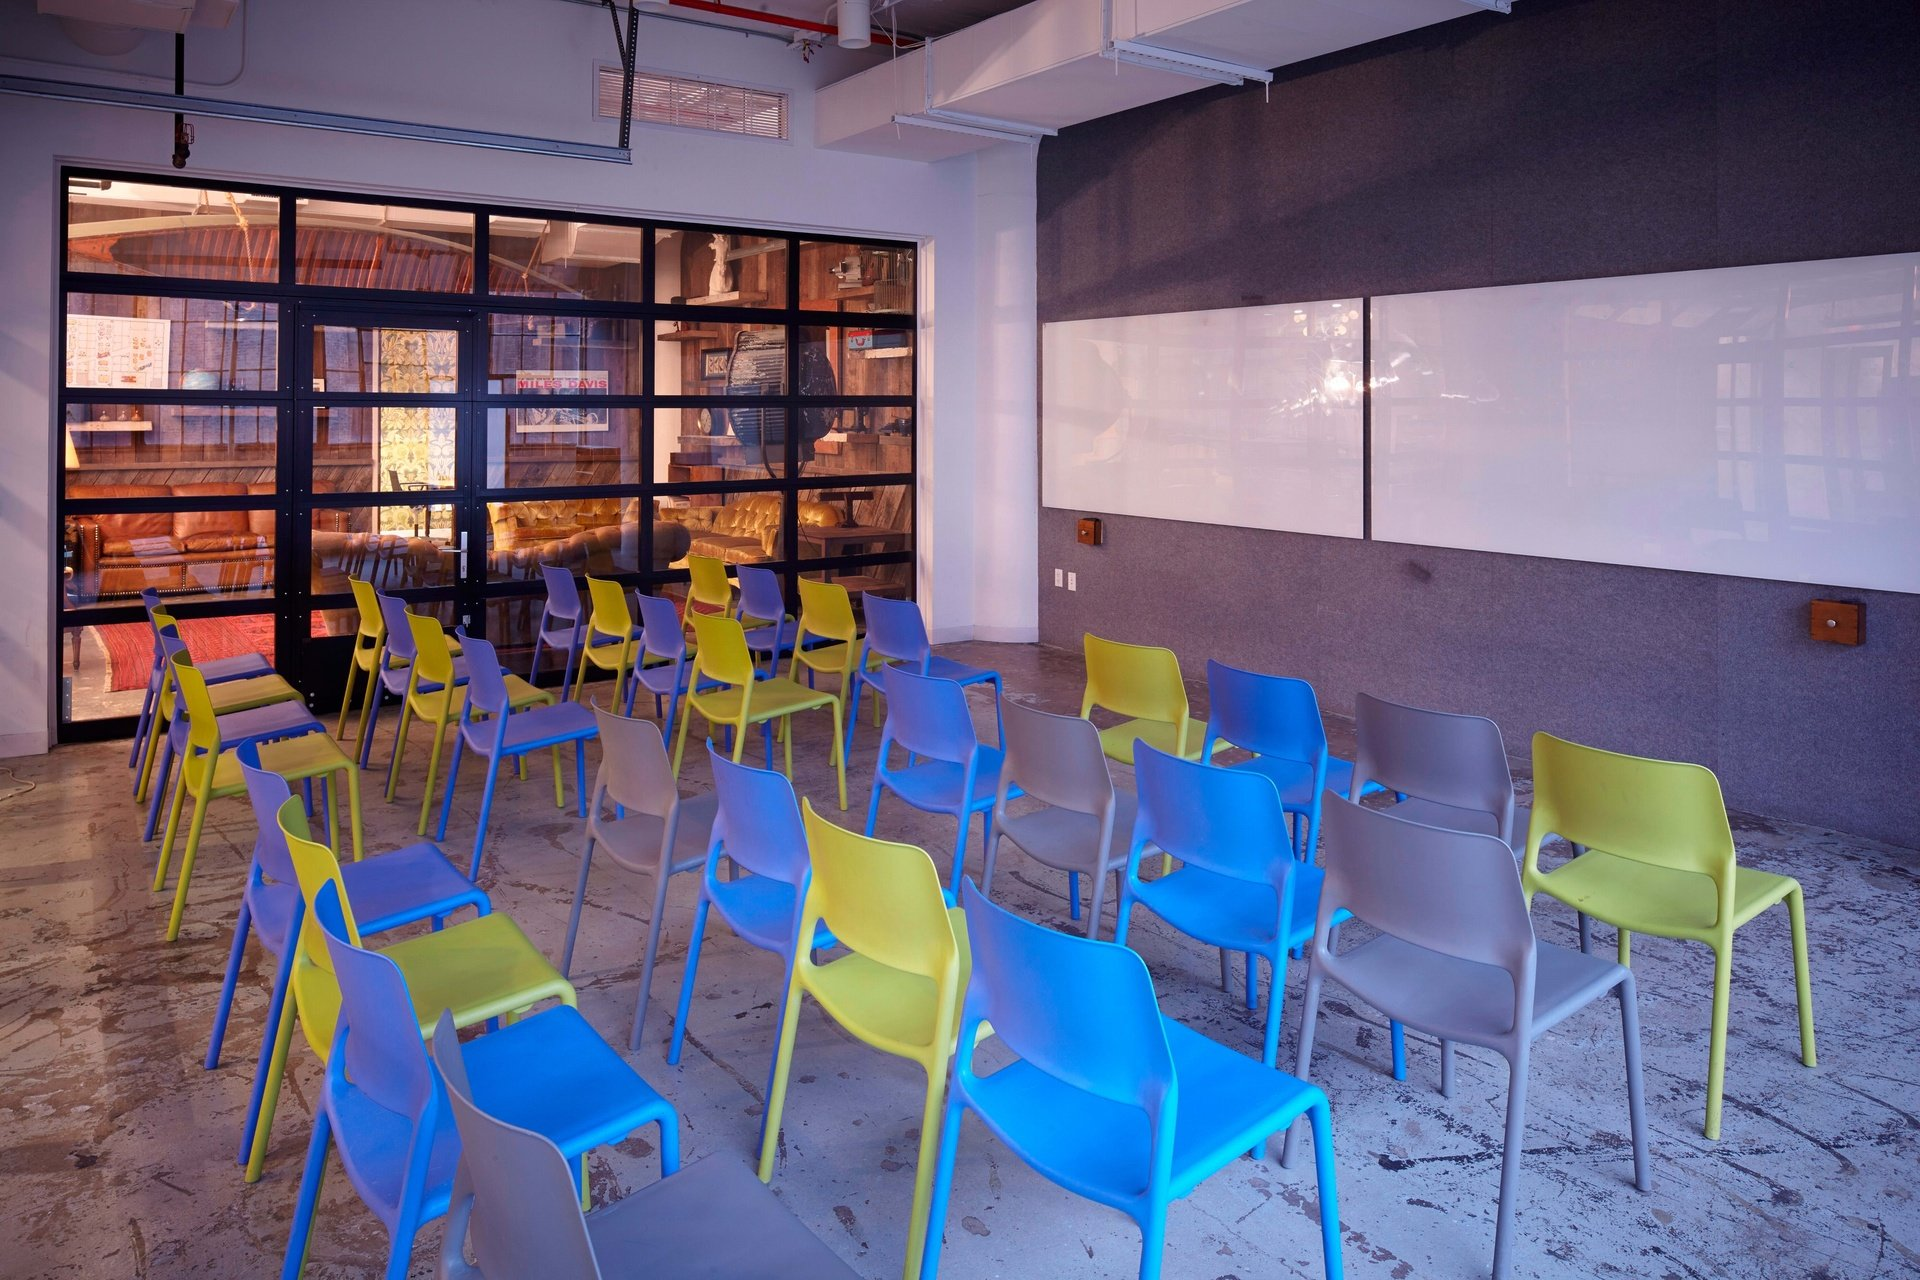 NYC seminar rooms Coworking Space Centre for Social Innovation - Classroom A image 0